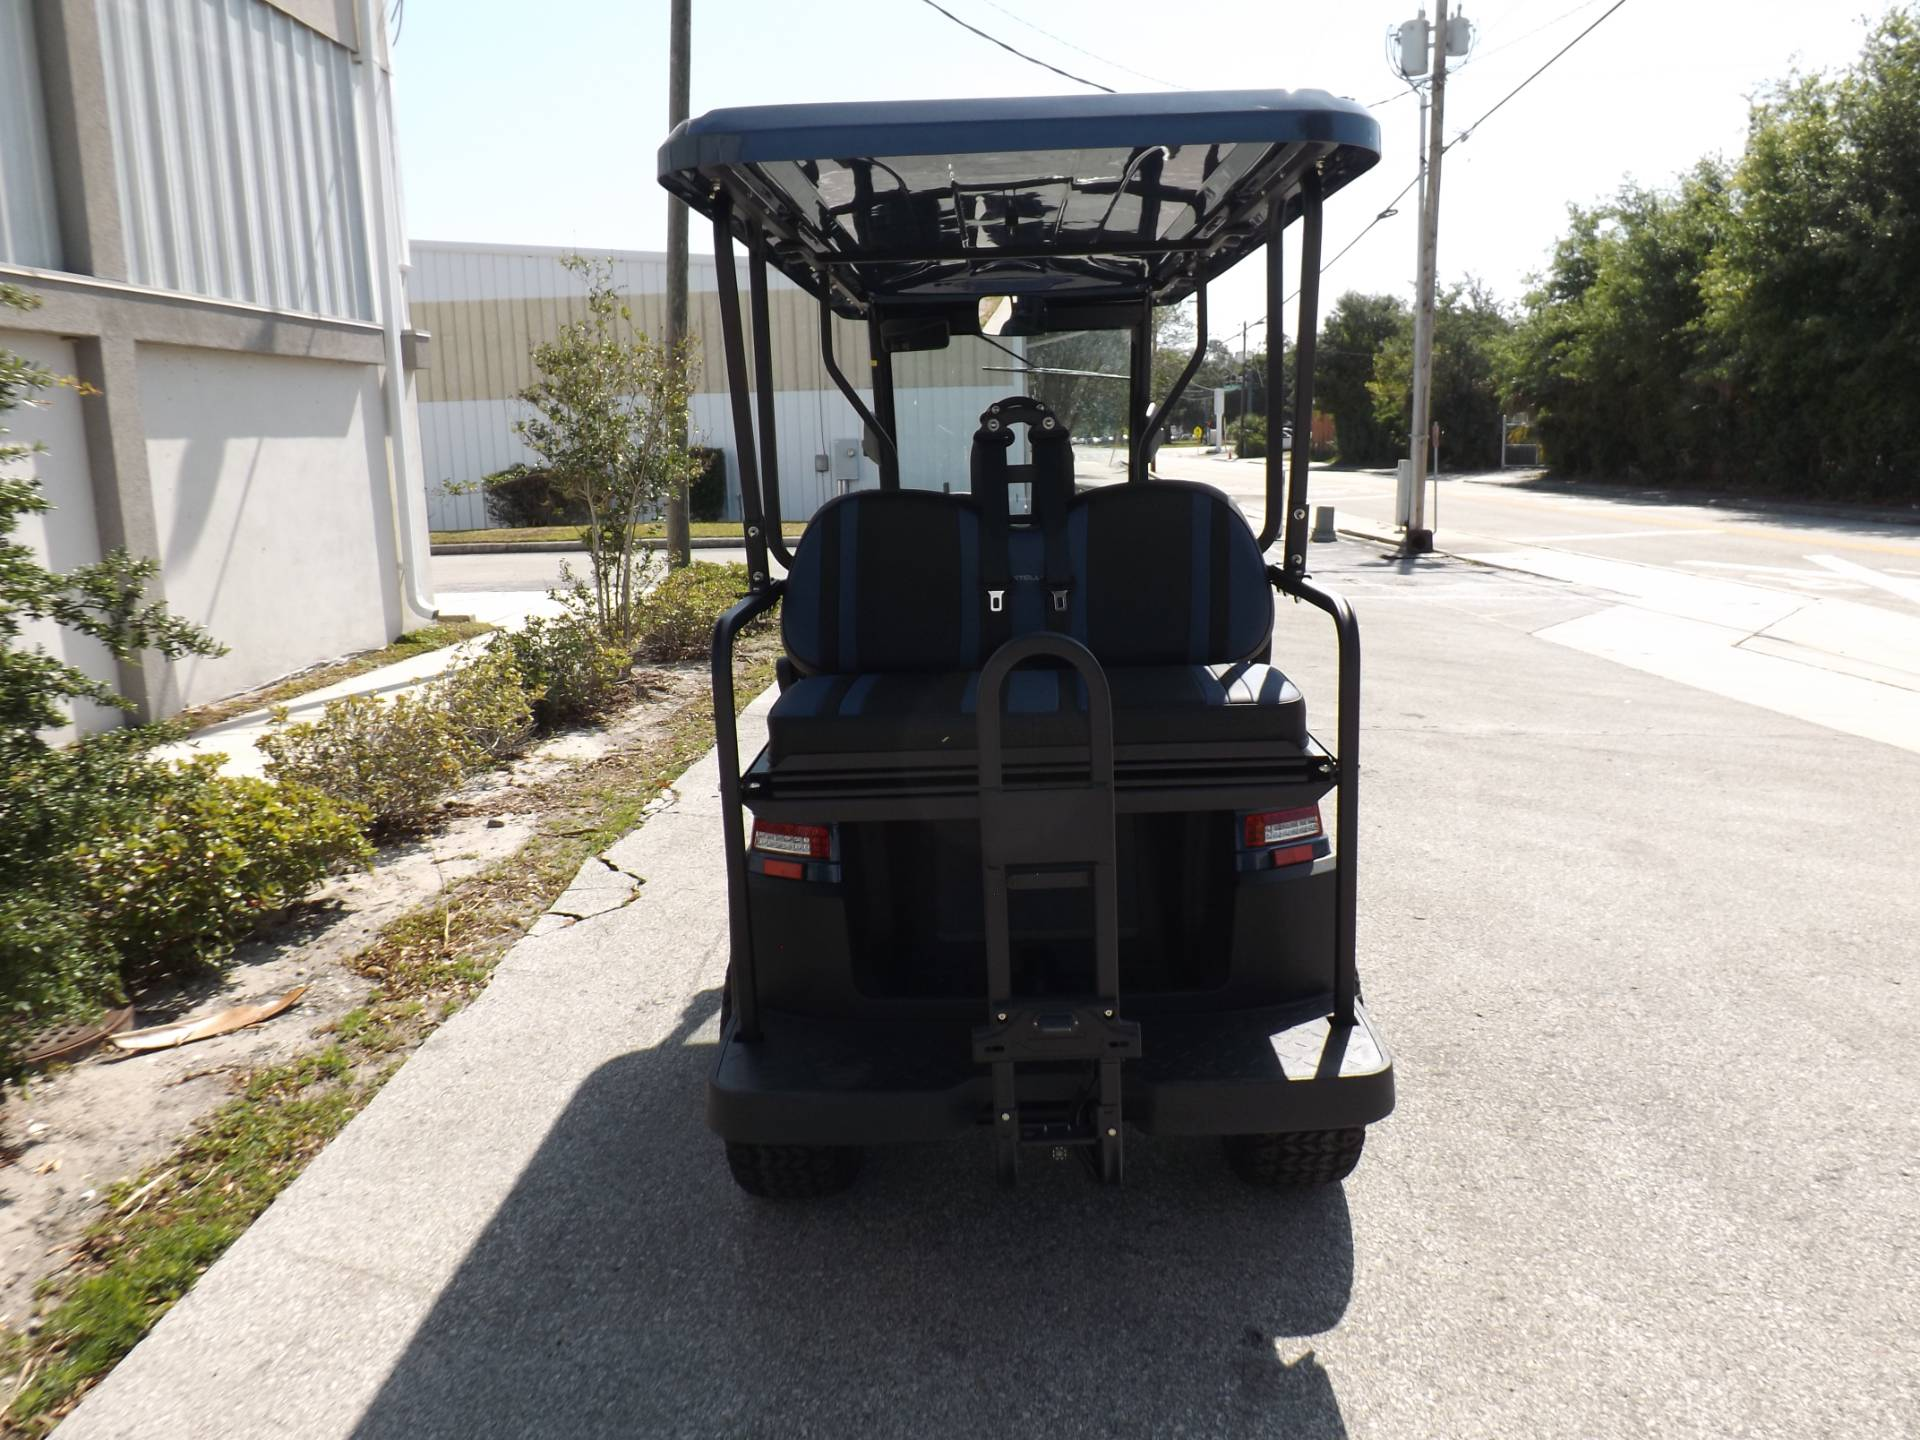 2021 Bintelli BEYOND 6P LIFTED STREET LEGAL GOLF CART in Lakeland, Florida - Photo 4